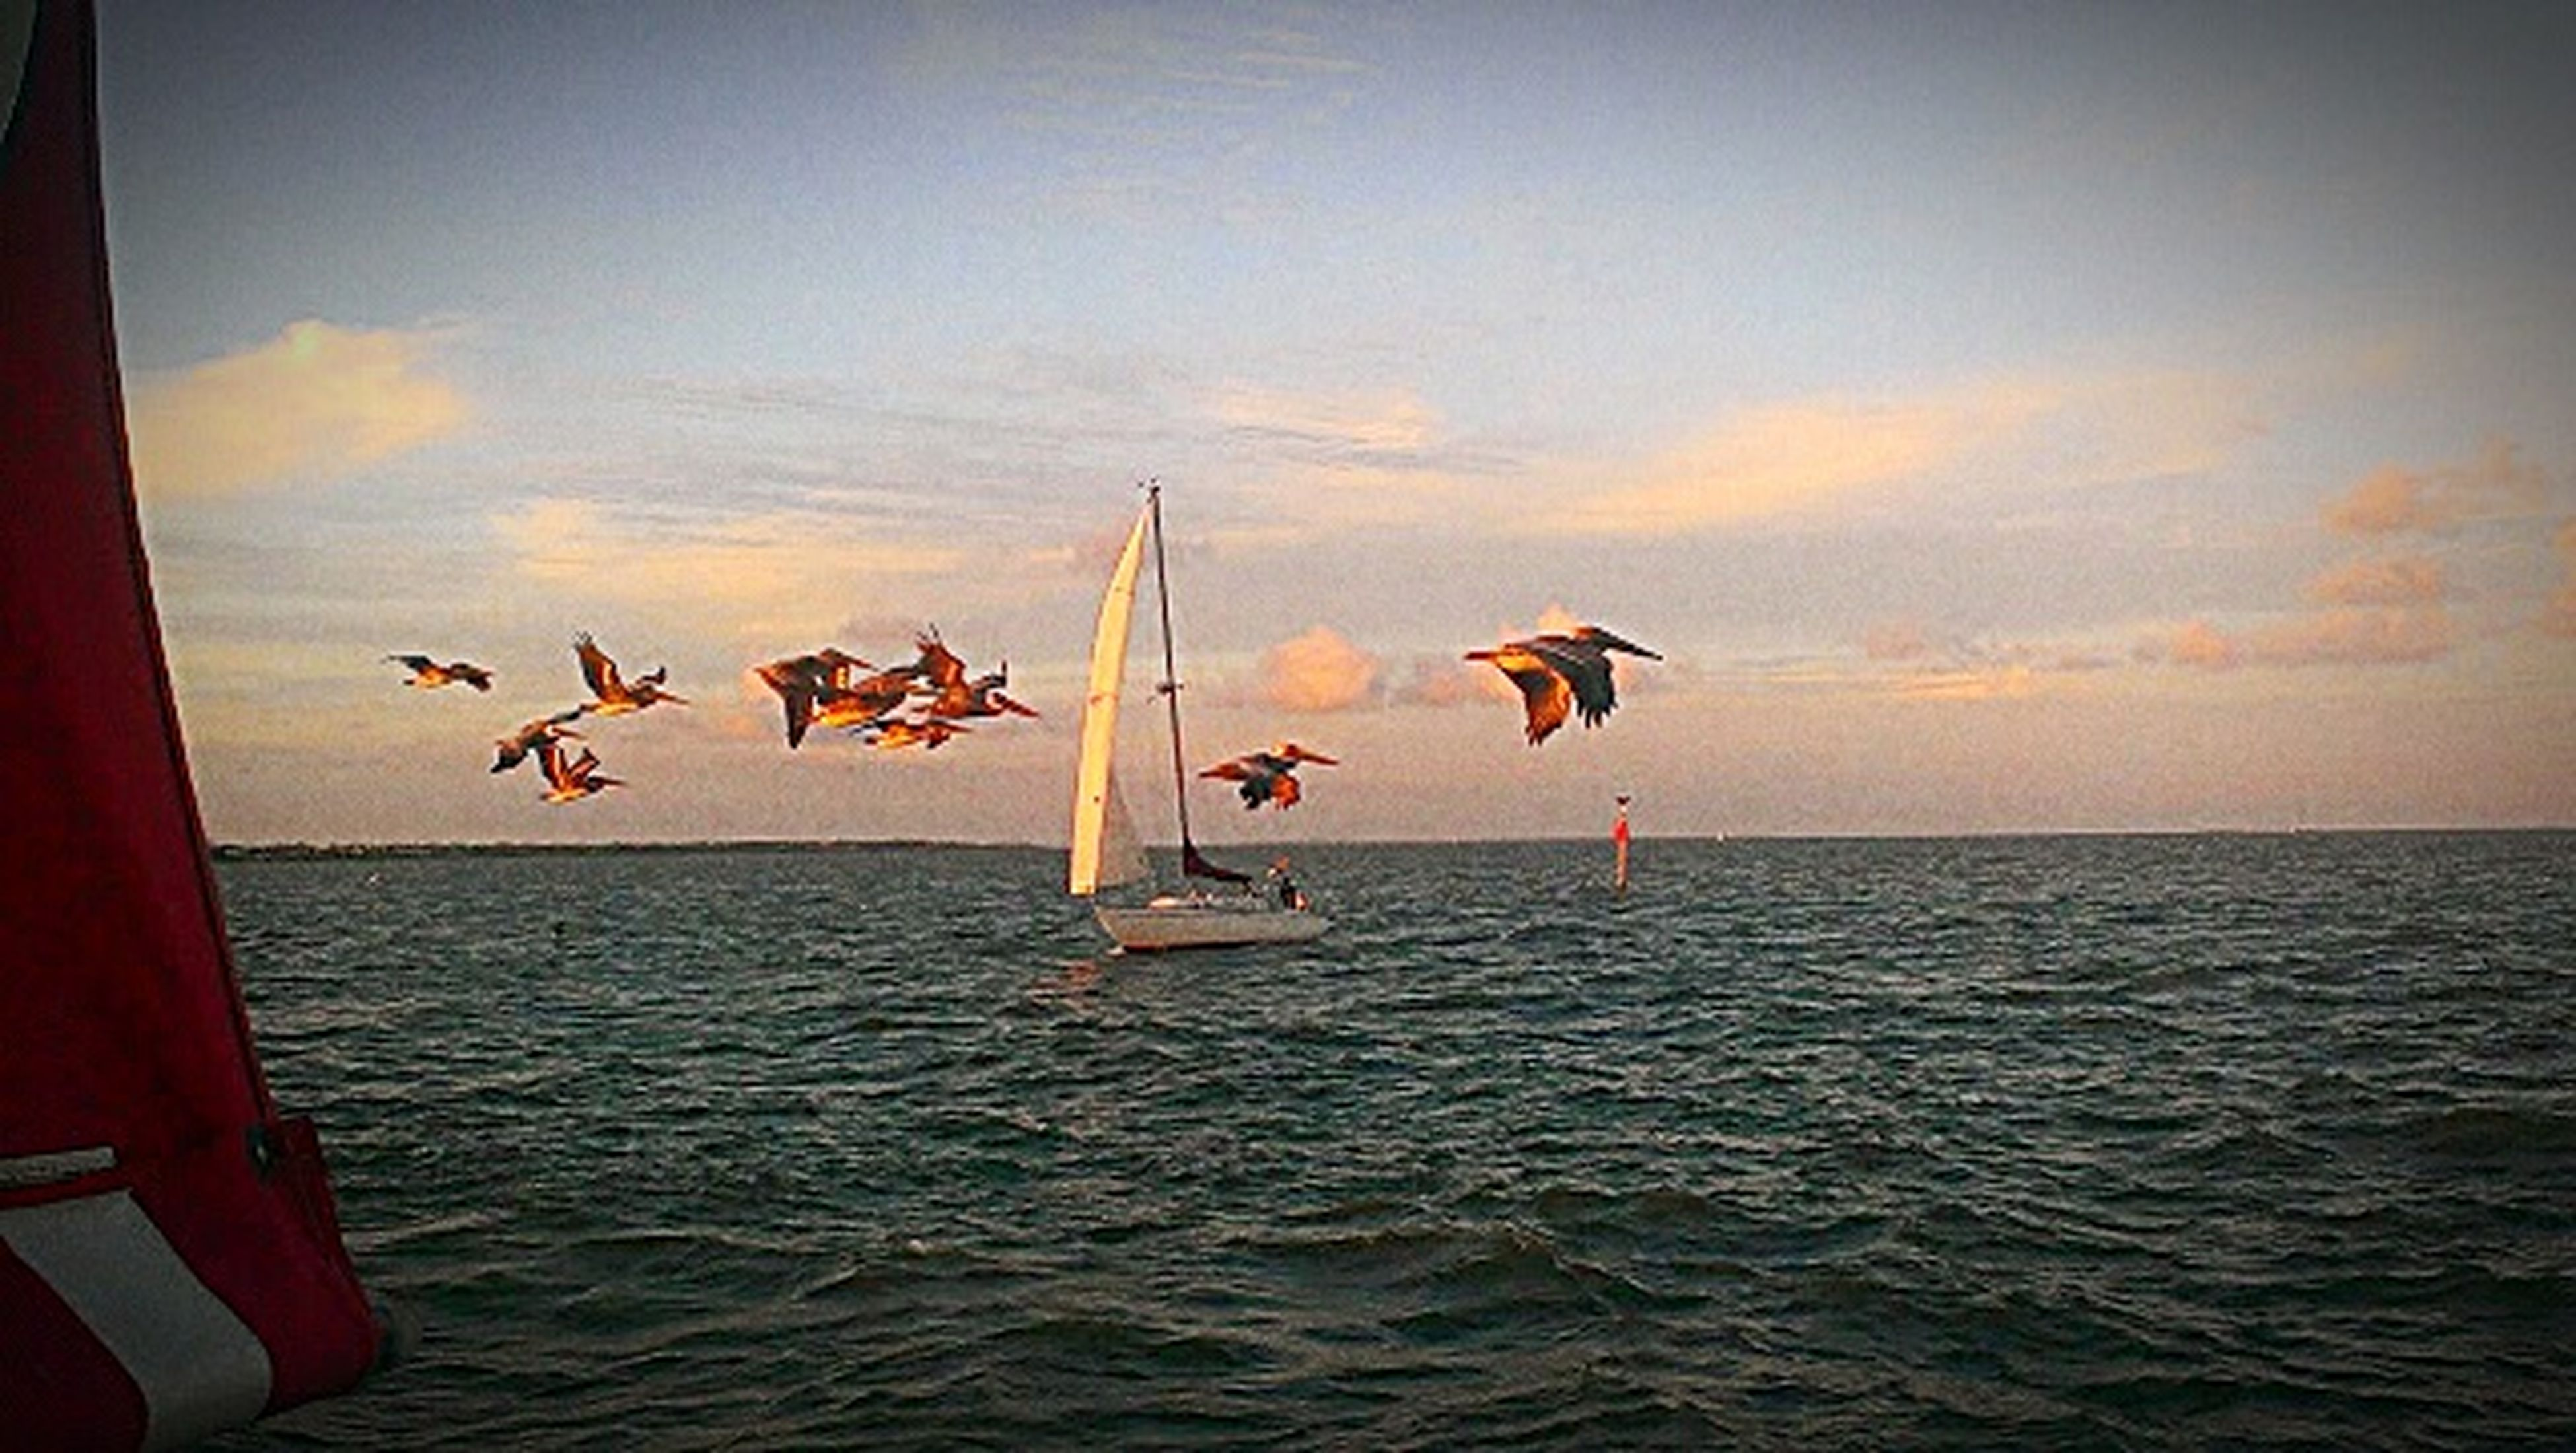 sea, water, flying, animal themes, animals in the wild, sky, waterfront, bird, wildlife, horizon over water, sunset, transportation, nautical vessel, mid-air, cloud - sky, nature, medium group of animals, beauty in nature, spread wings